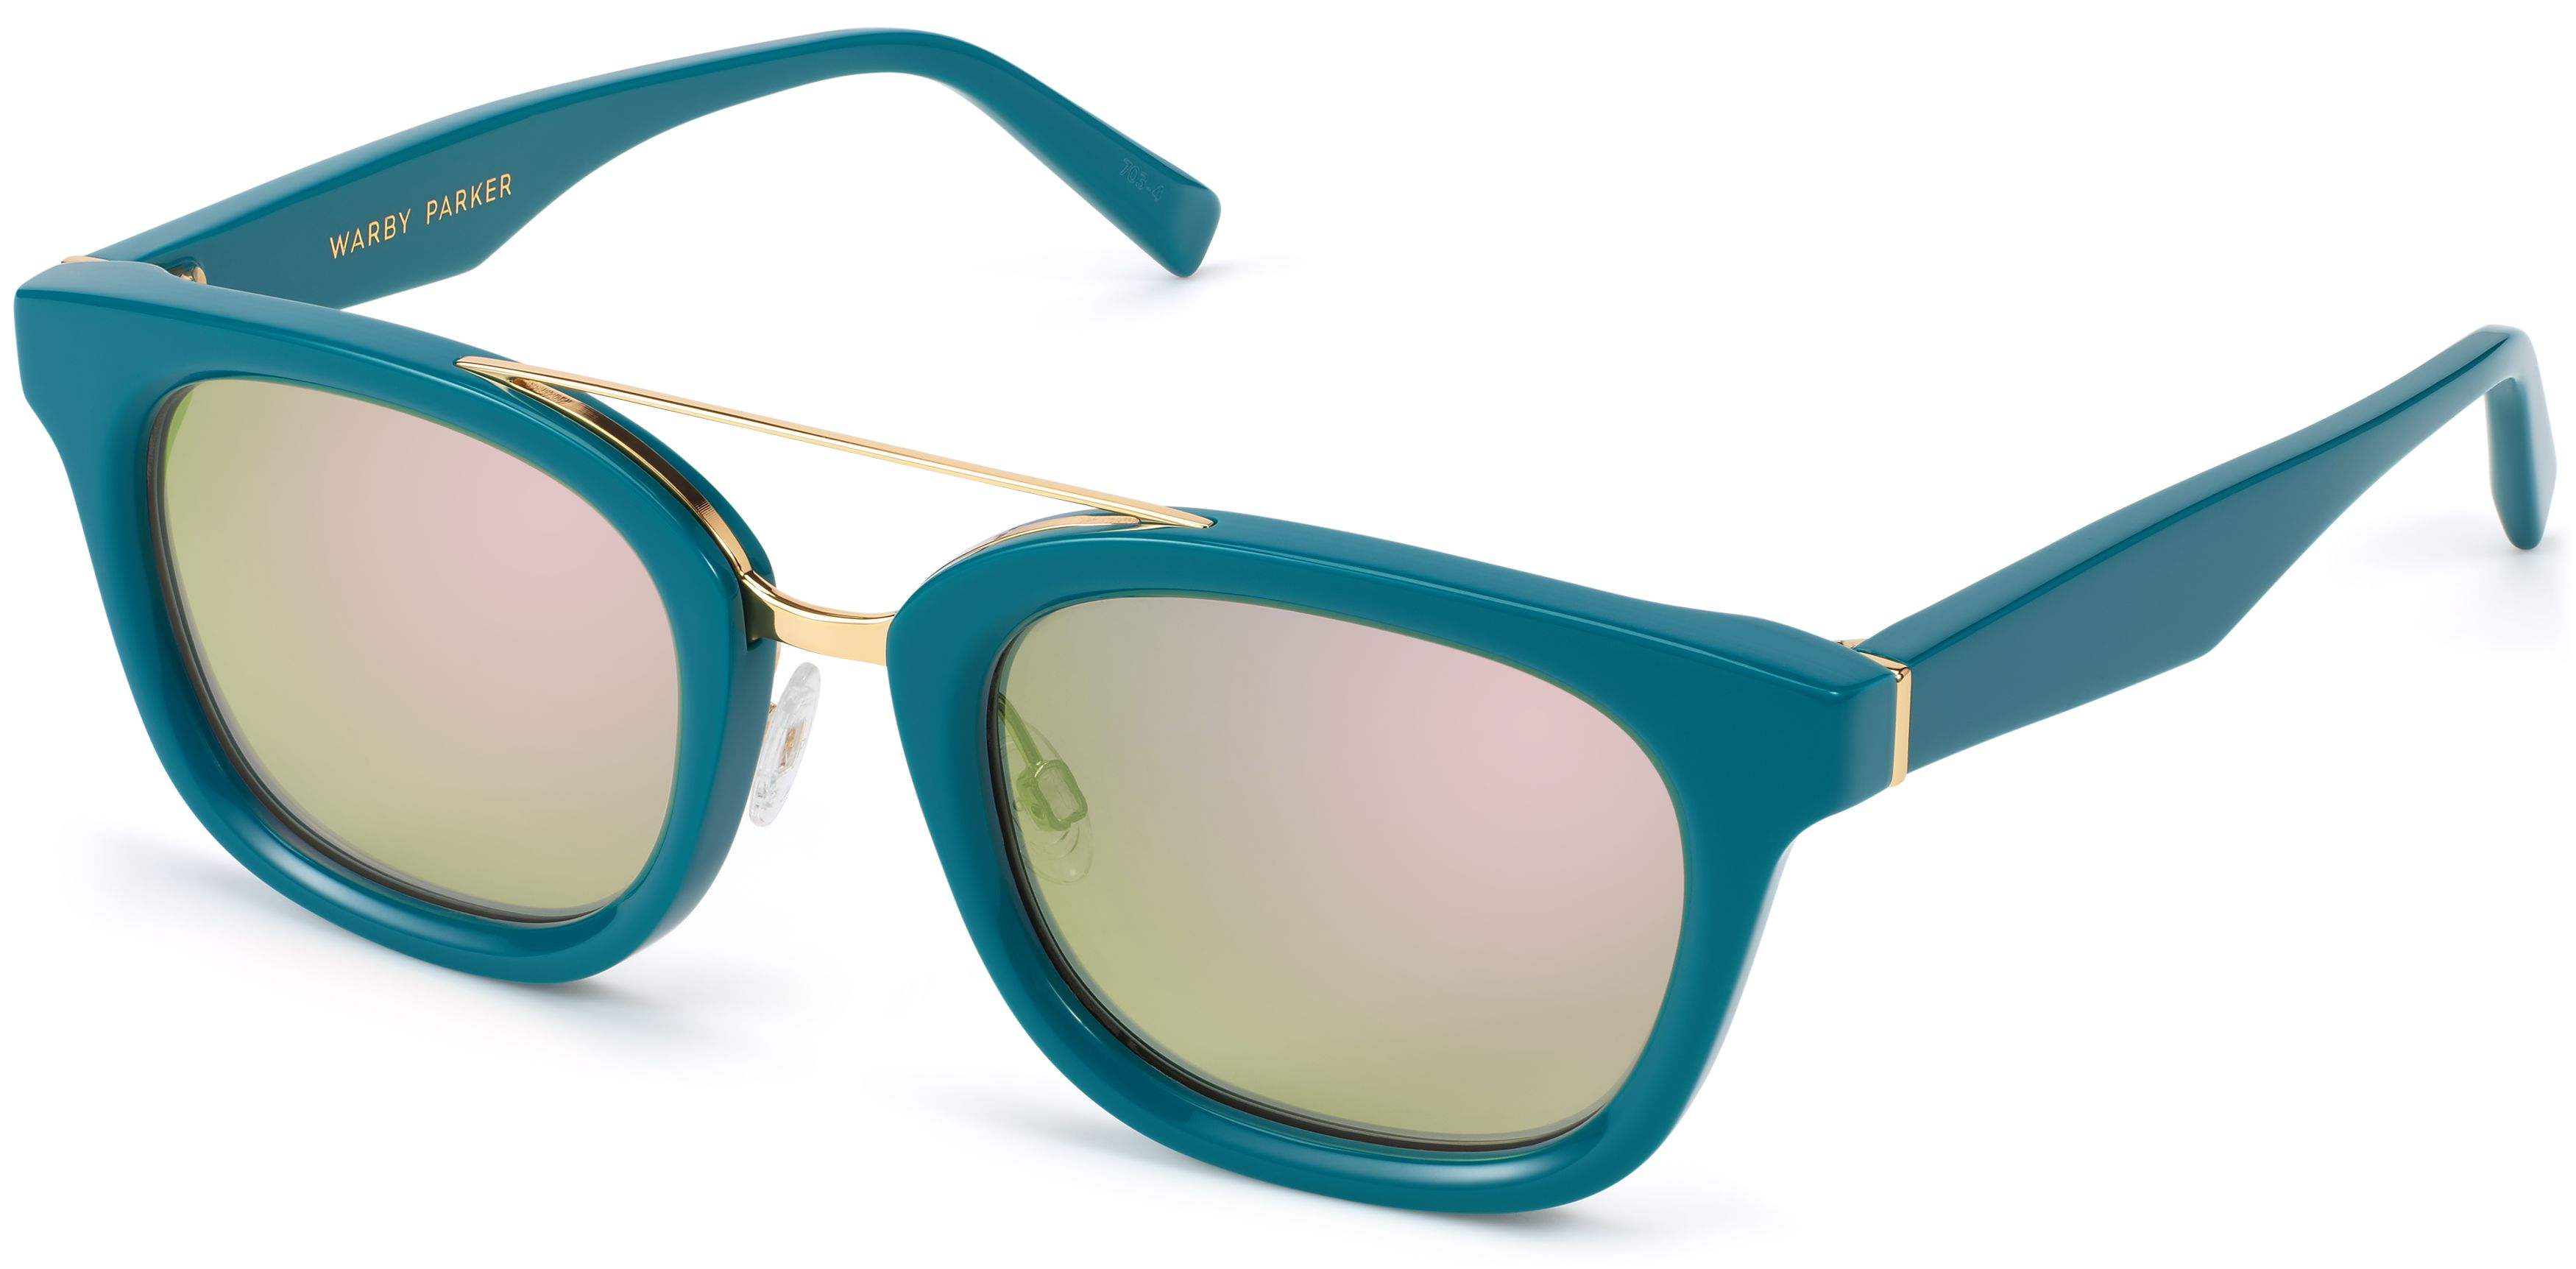 547e8cfb87c1 Yates Sunglasses in Peacock with Flash Mirrored Electric Green lenses for  Women